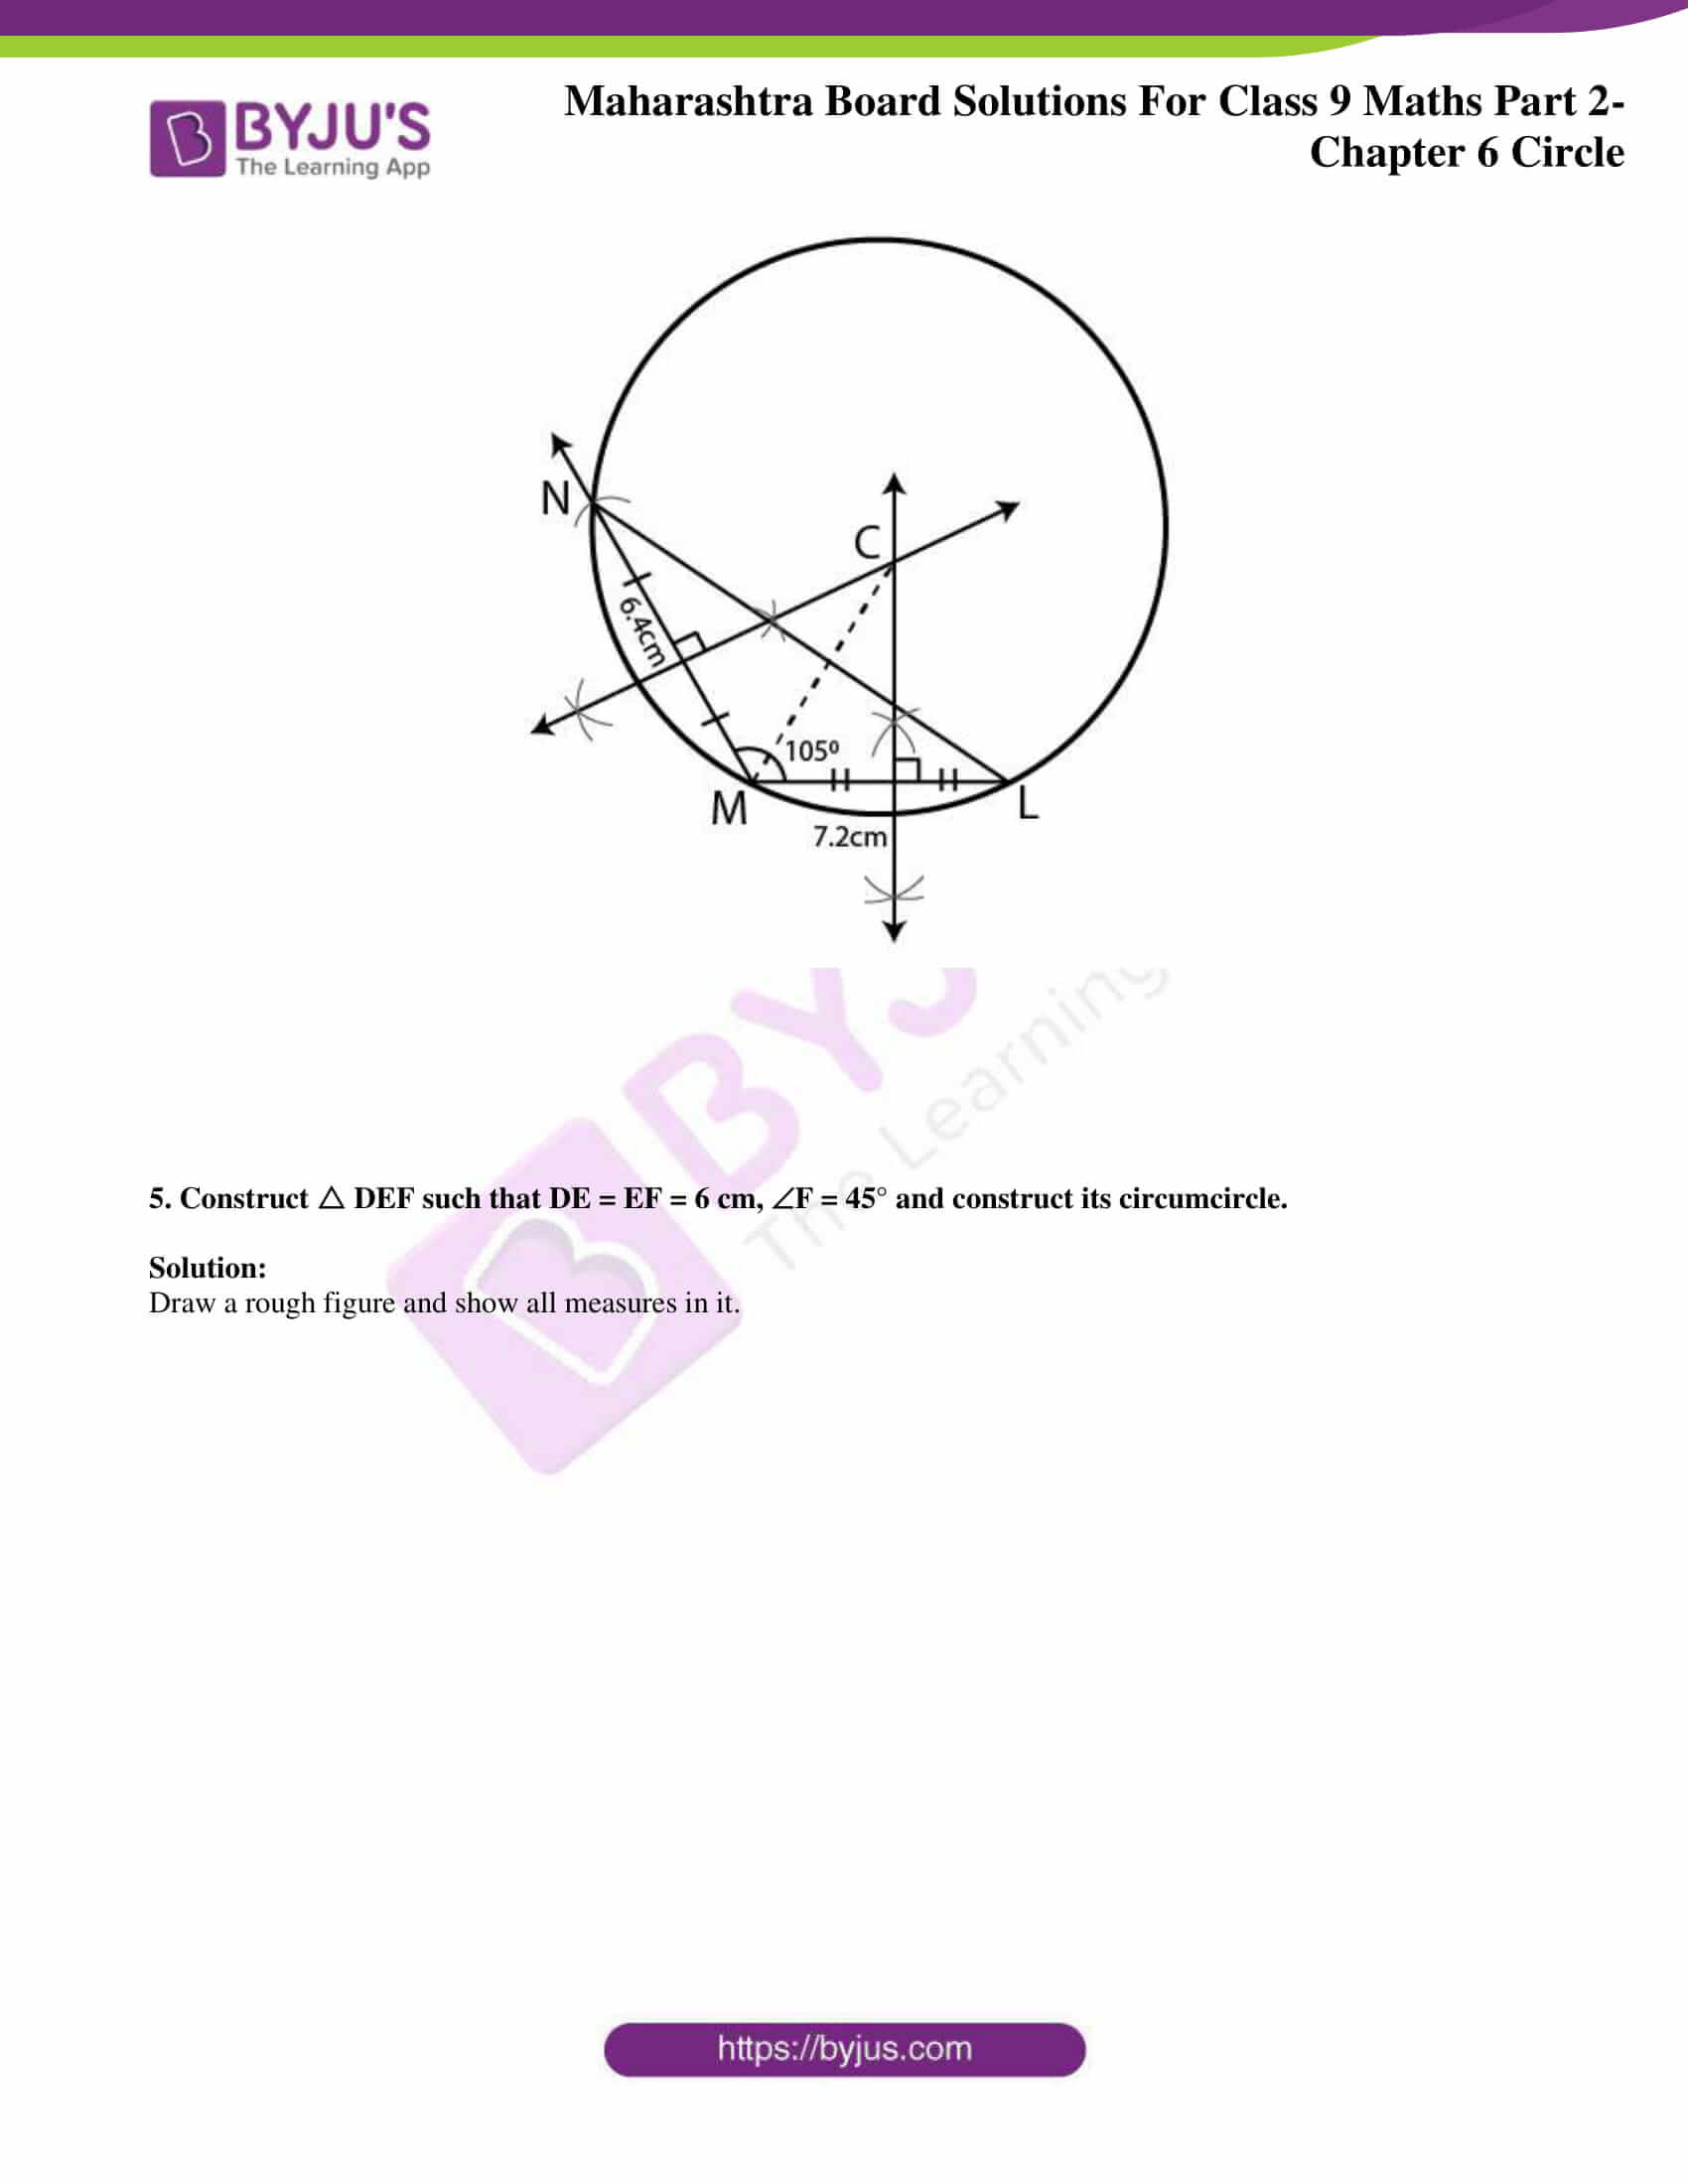 msbshse solutions for class 9 maths part 2 chapter 6 17